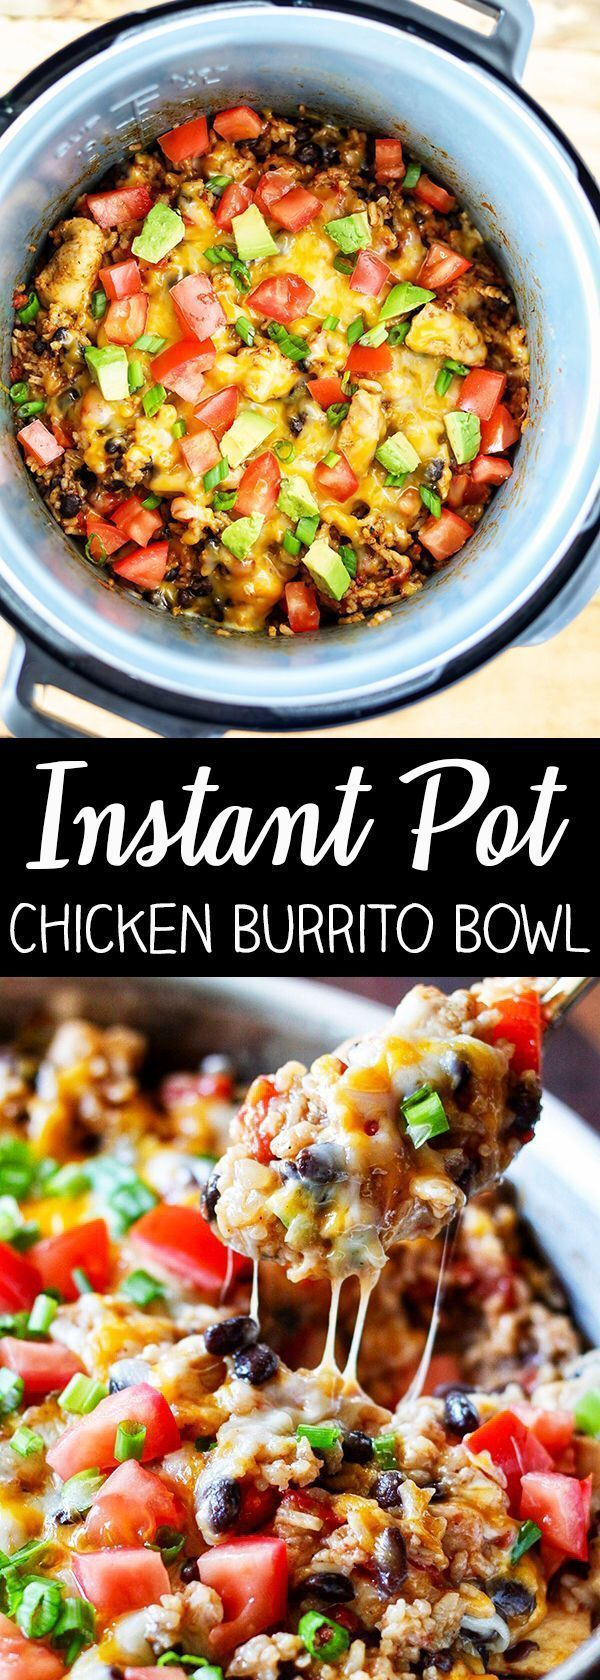 Instant Pot Chicken Burrito Bowl images